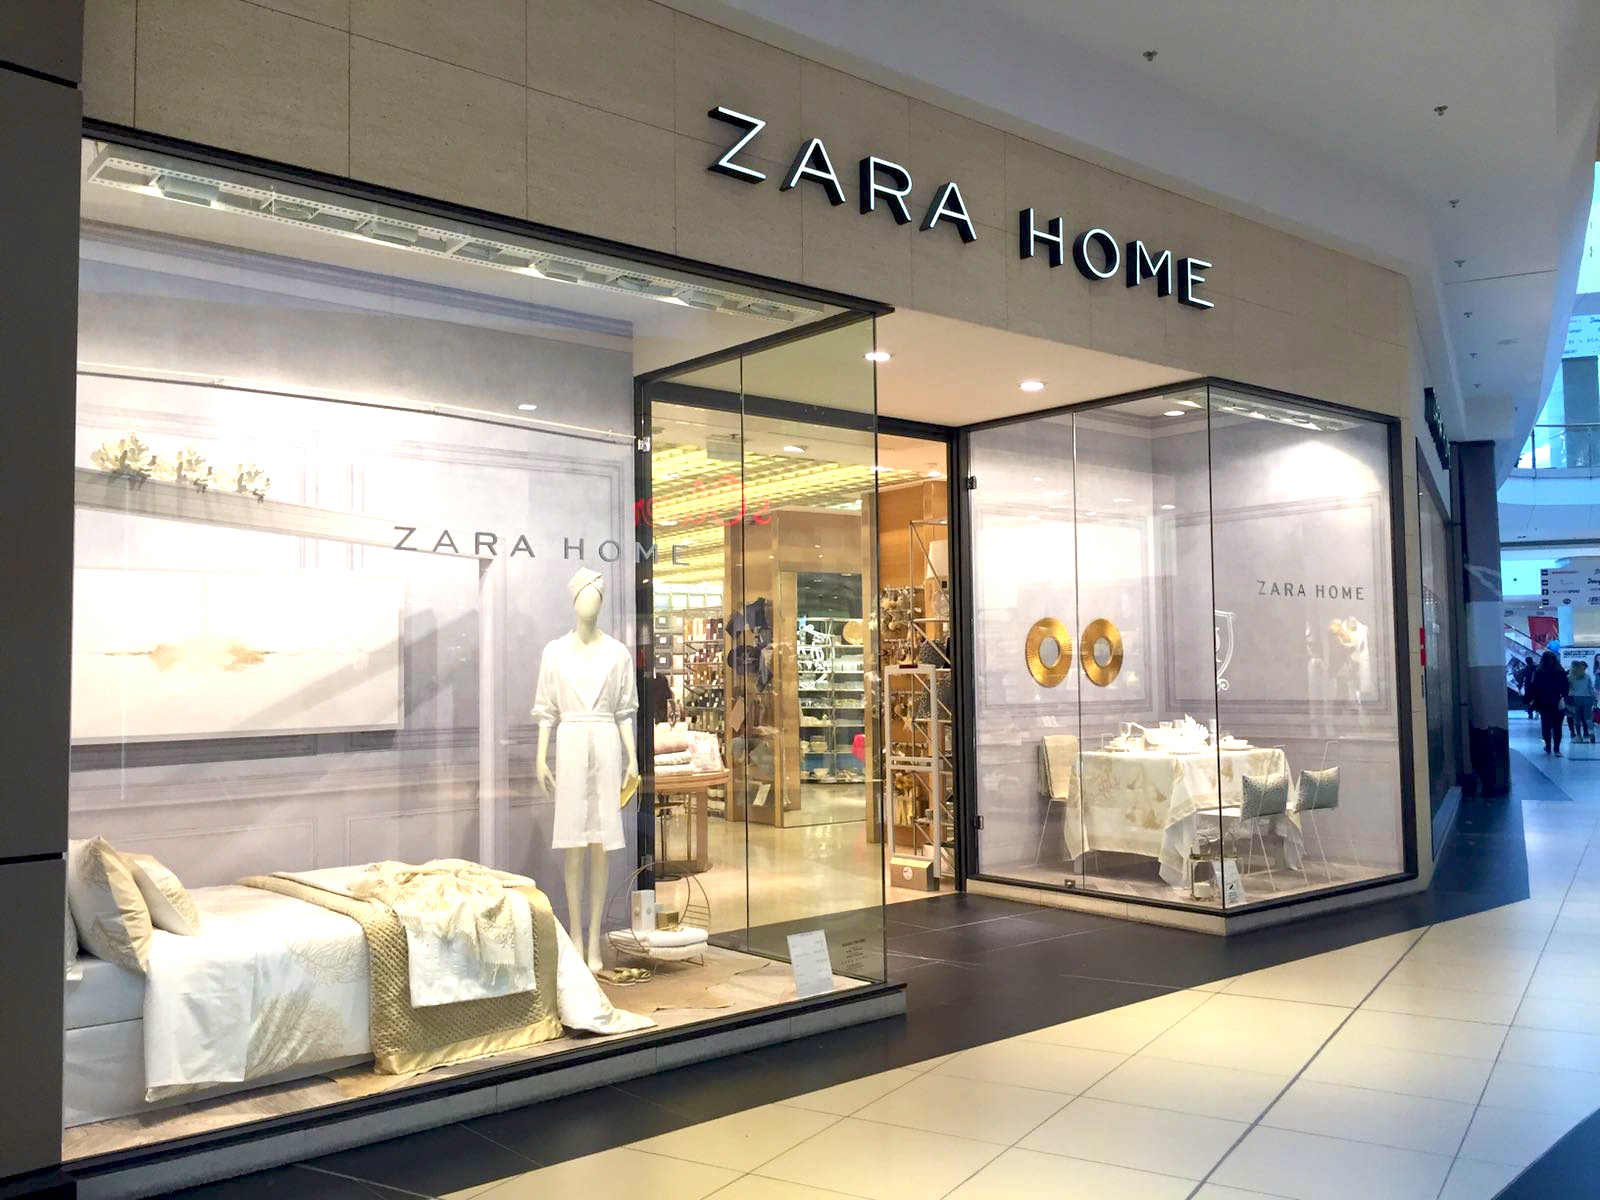 5 pretty decor finds from my zara home shopping spree for Display bedroom ideas